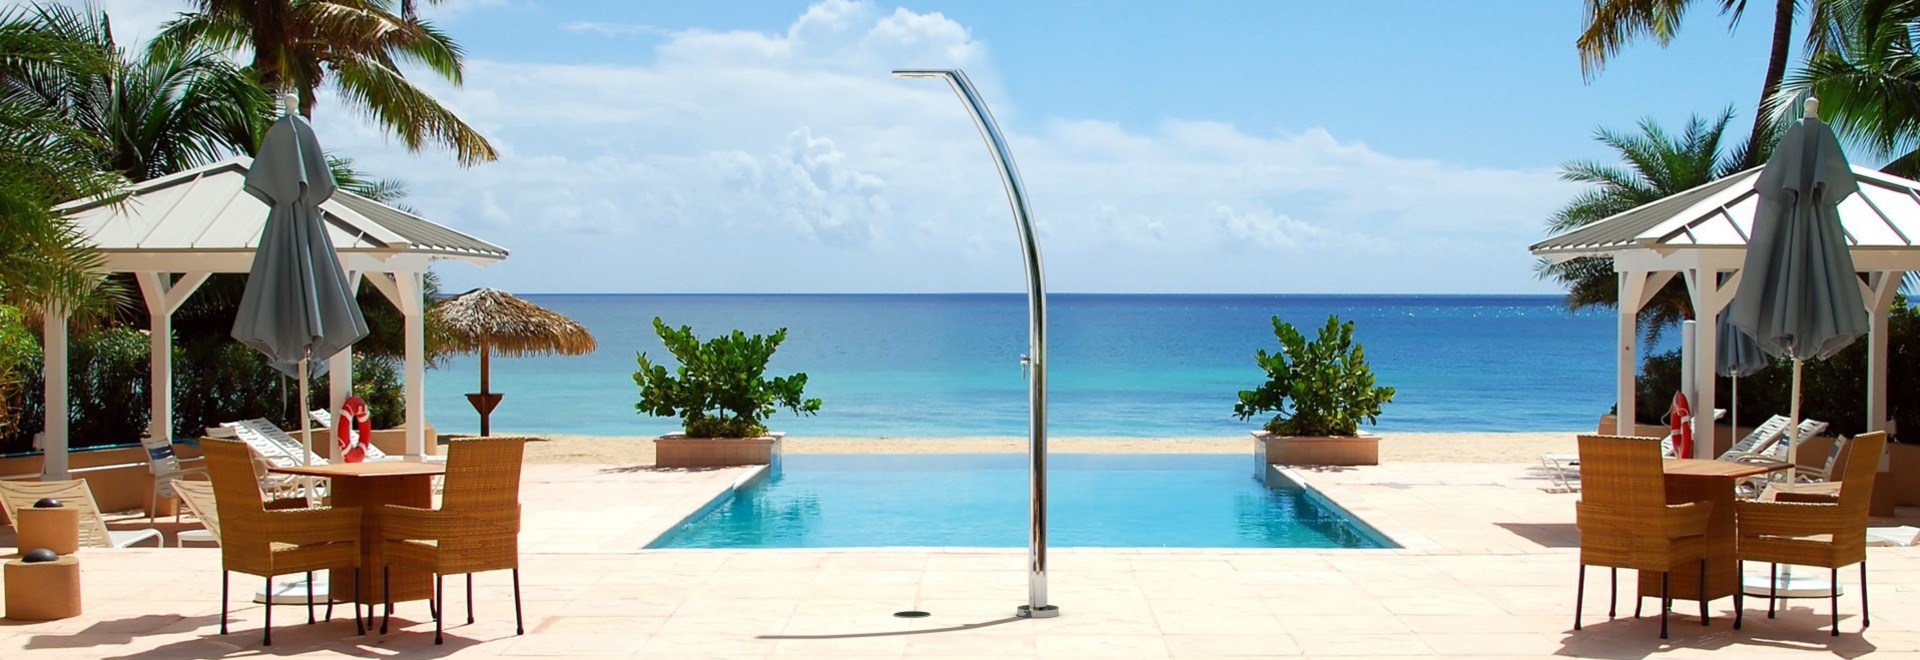 Yacht M a new stylish outdoor shower by Inoxstyle